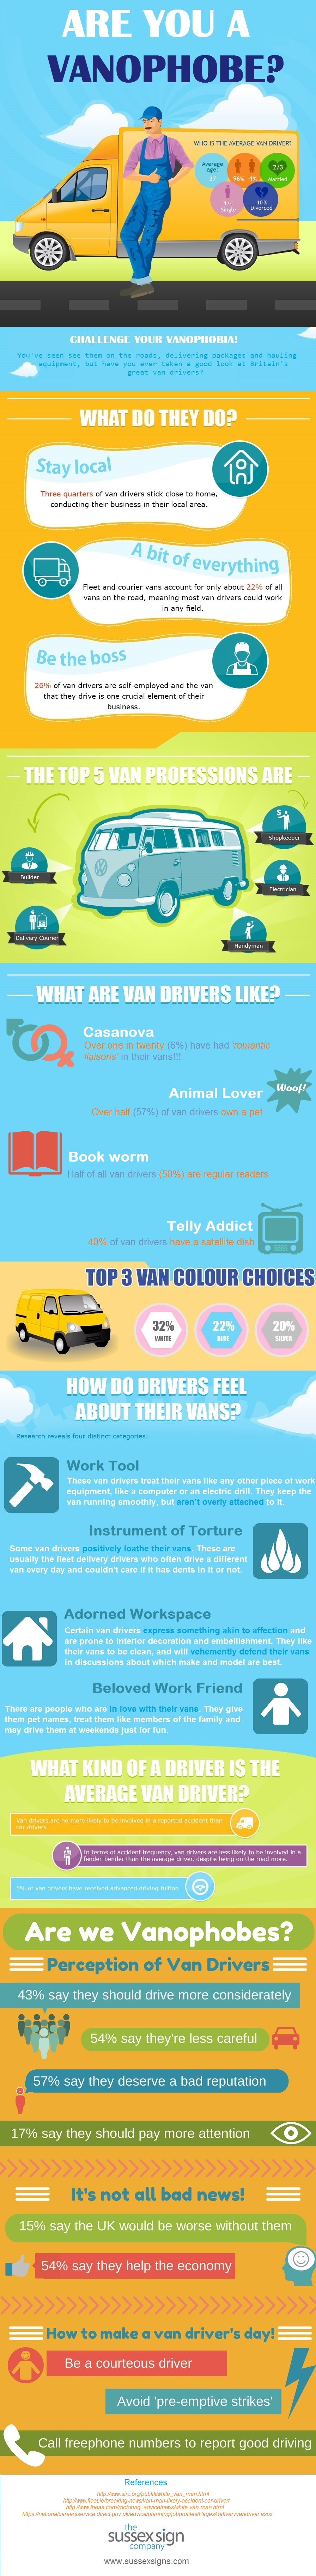 Are You a Vanophobe?